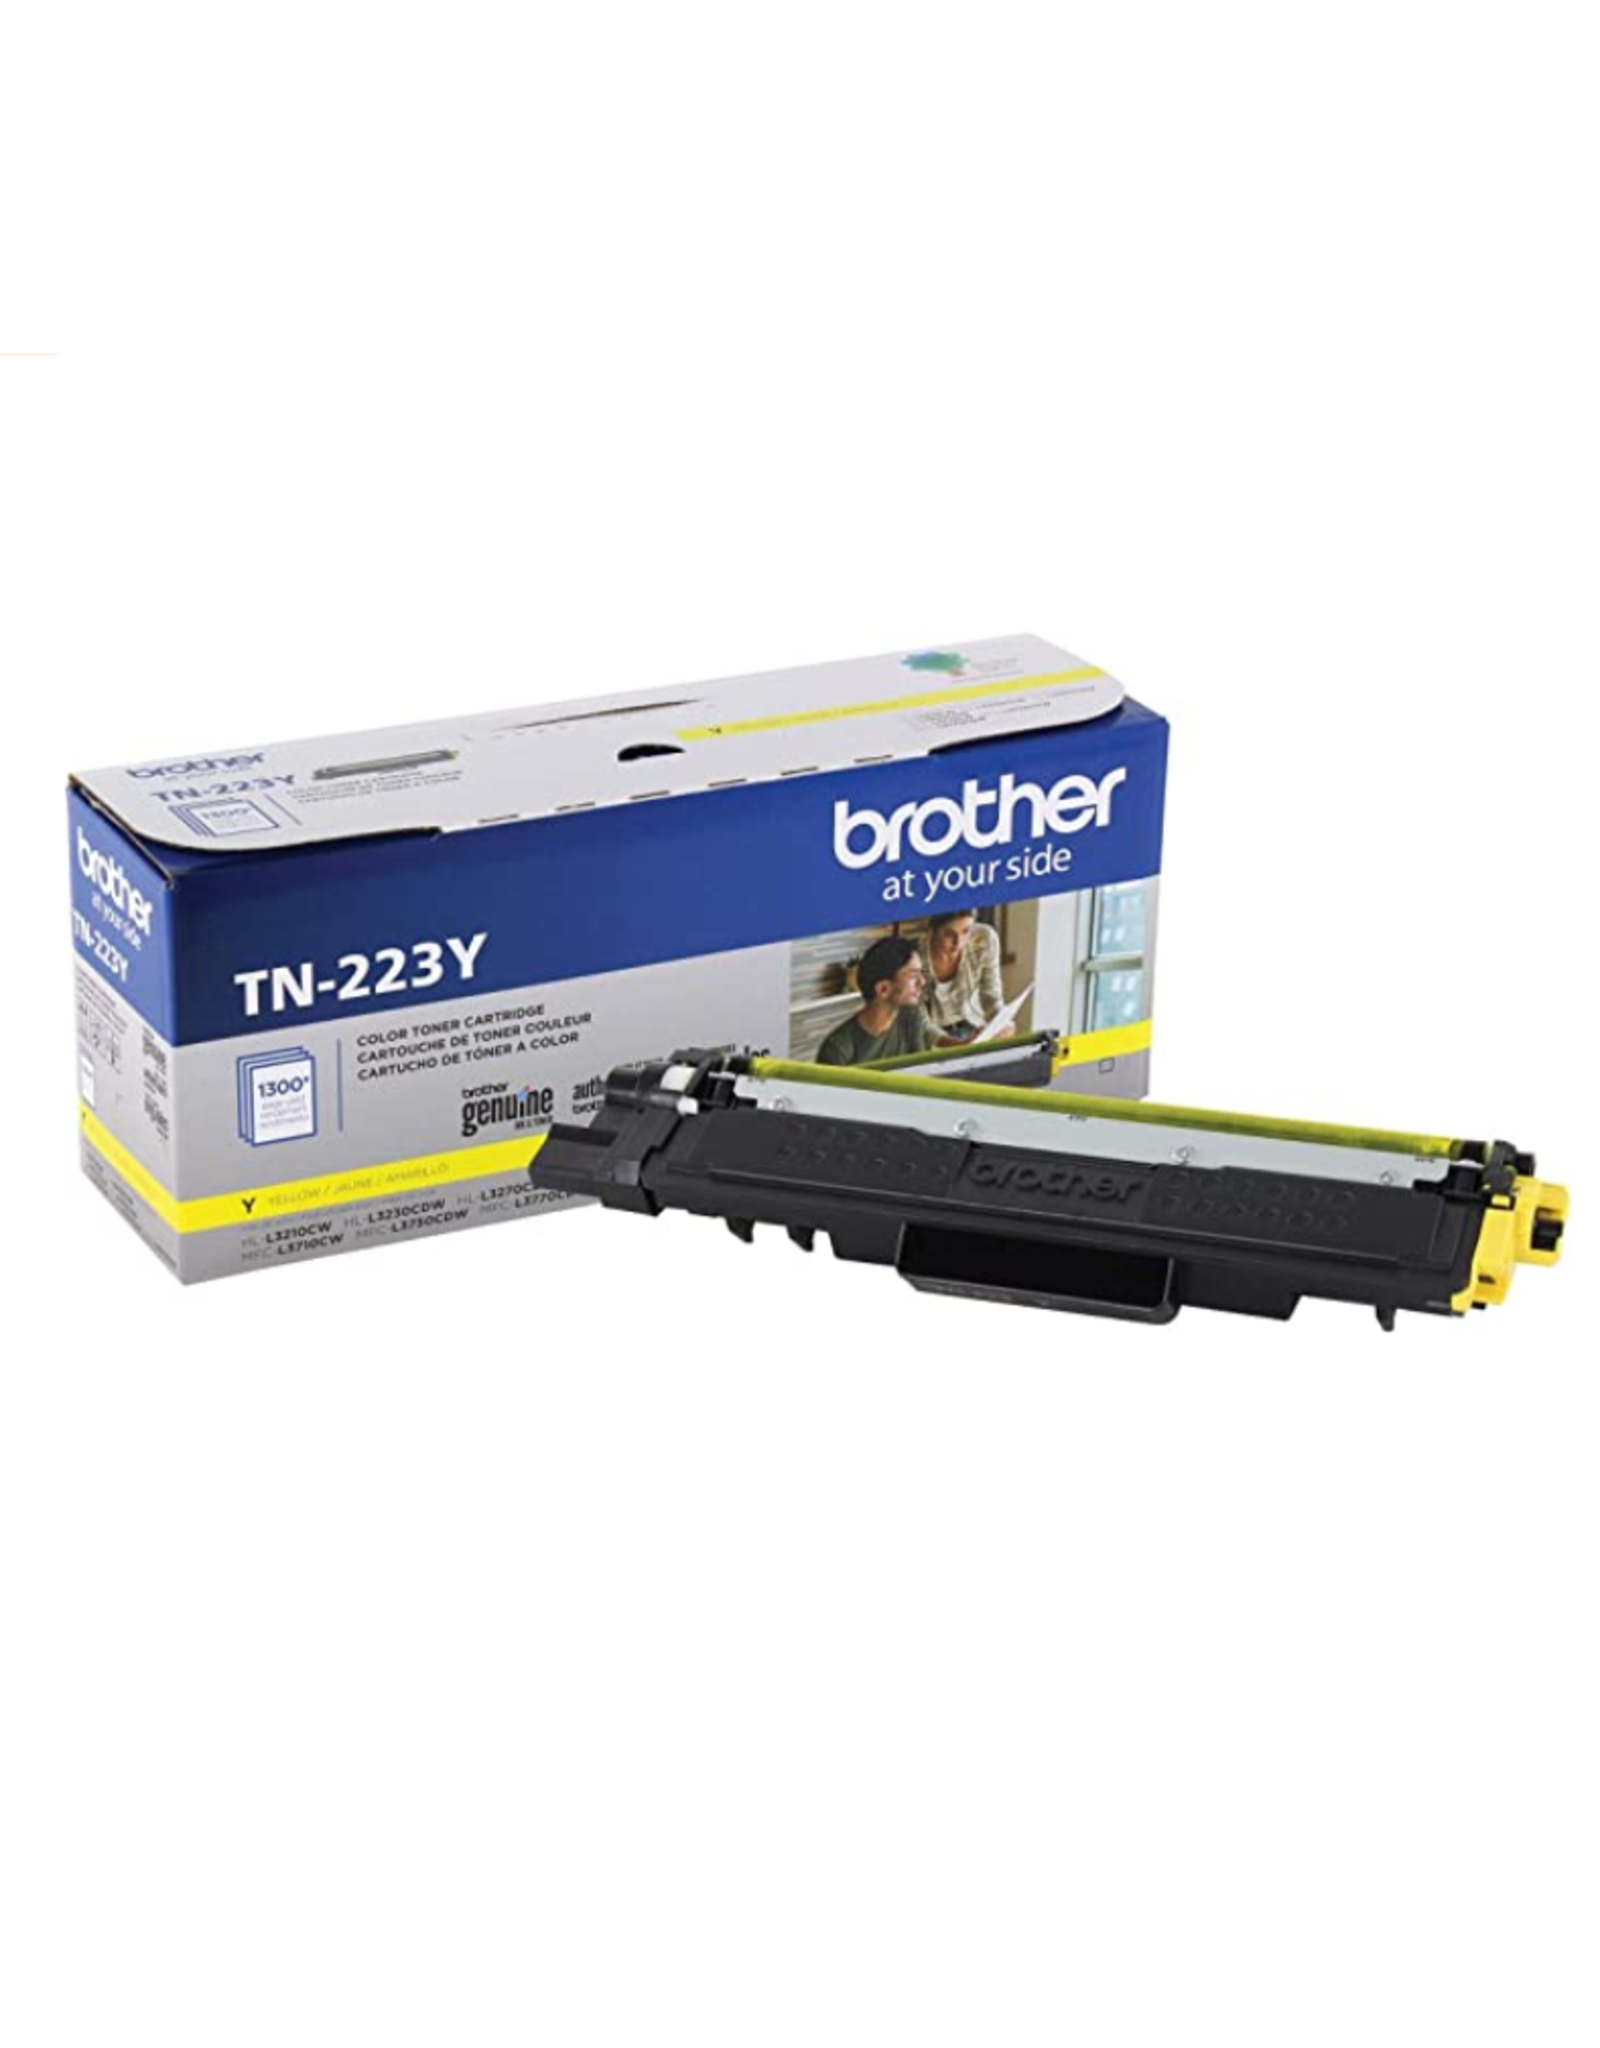 Brother Brother Toner Cartridge TN223Y Yellow